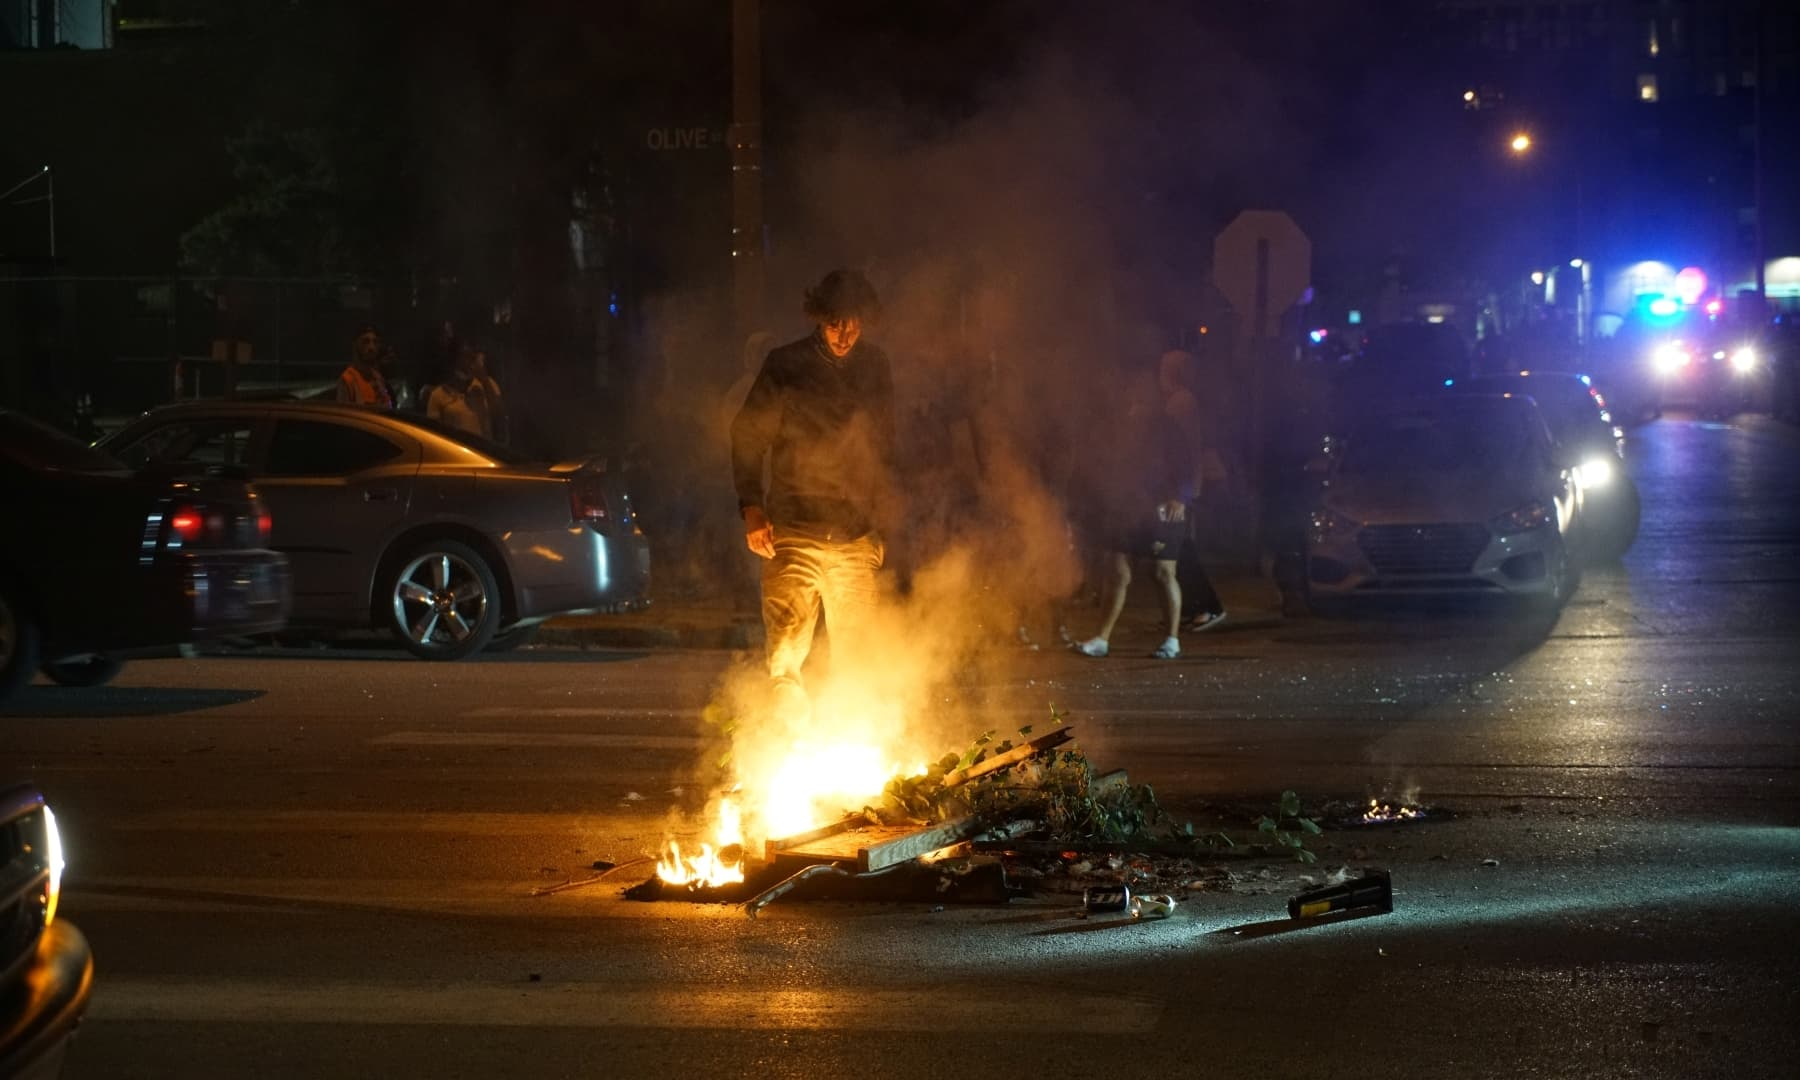 A protestor stands near a fire on the street during a protest in St Louis, Missouri, on June 2. — Reuters